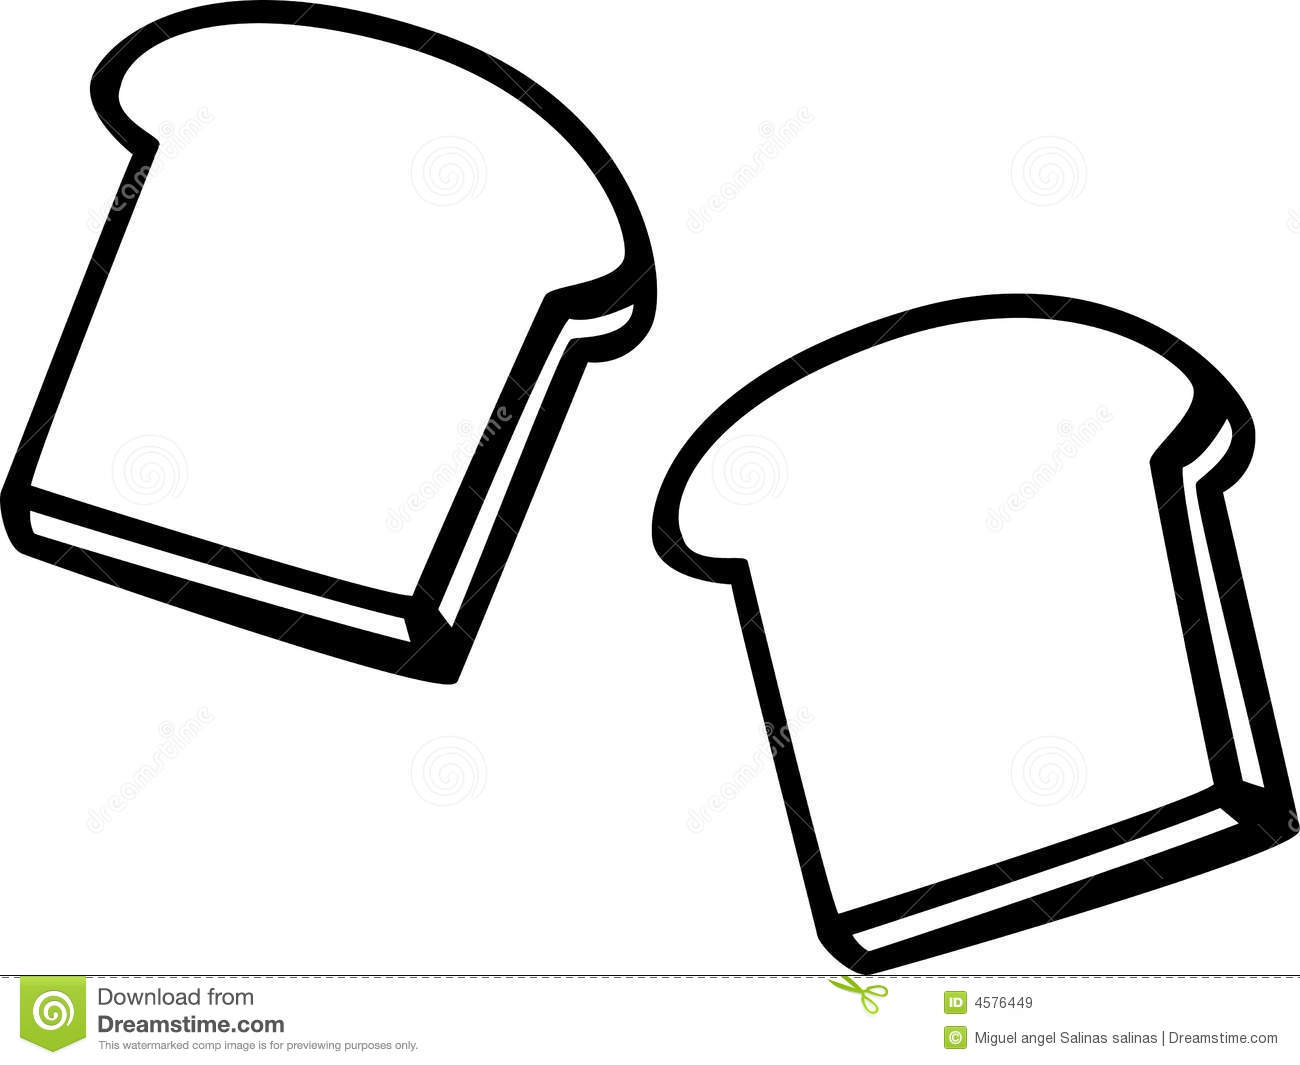 2 slices of bread clipart image library stock Slice Of Bread Clipart Black And White | Clipart Panda - Free ... image library stock